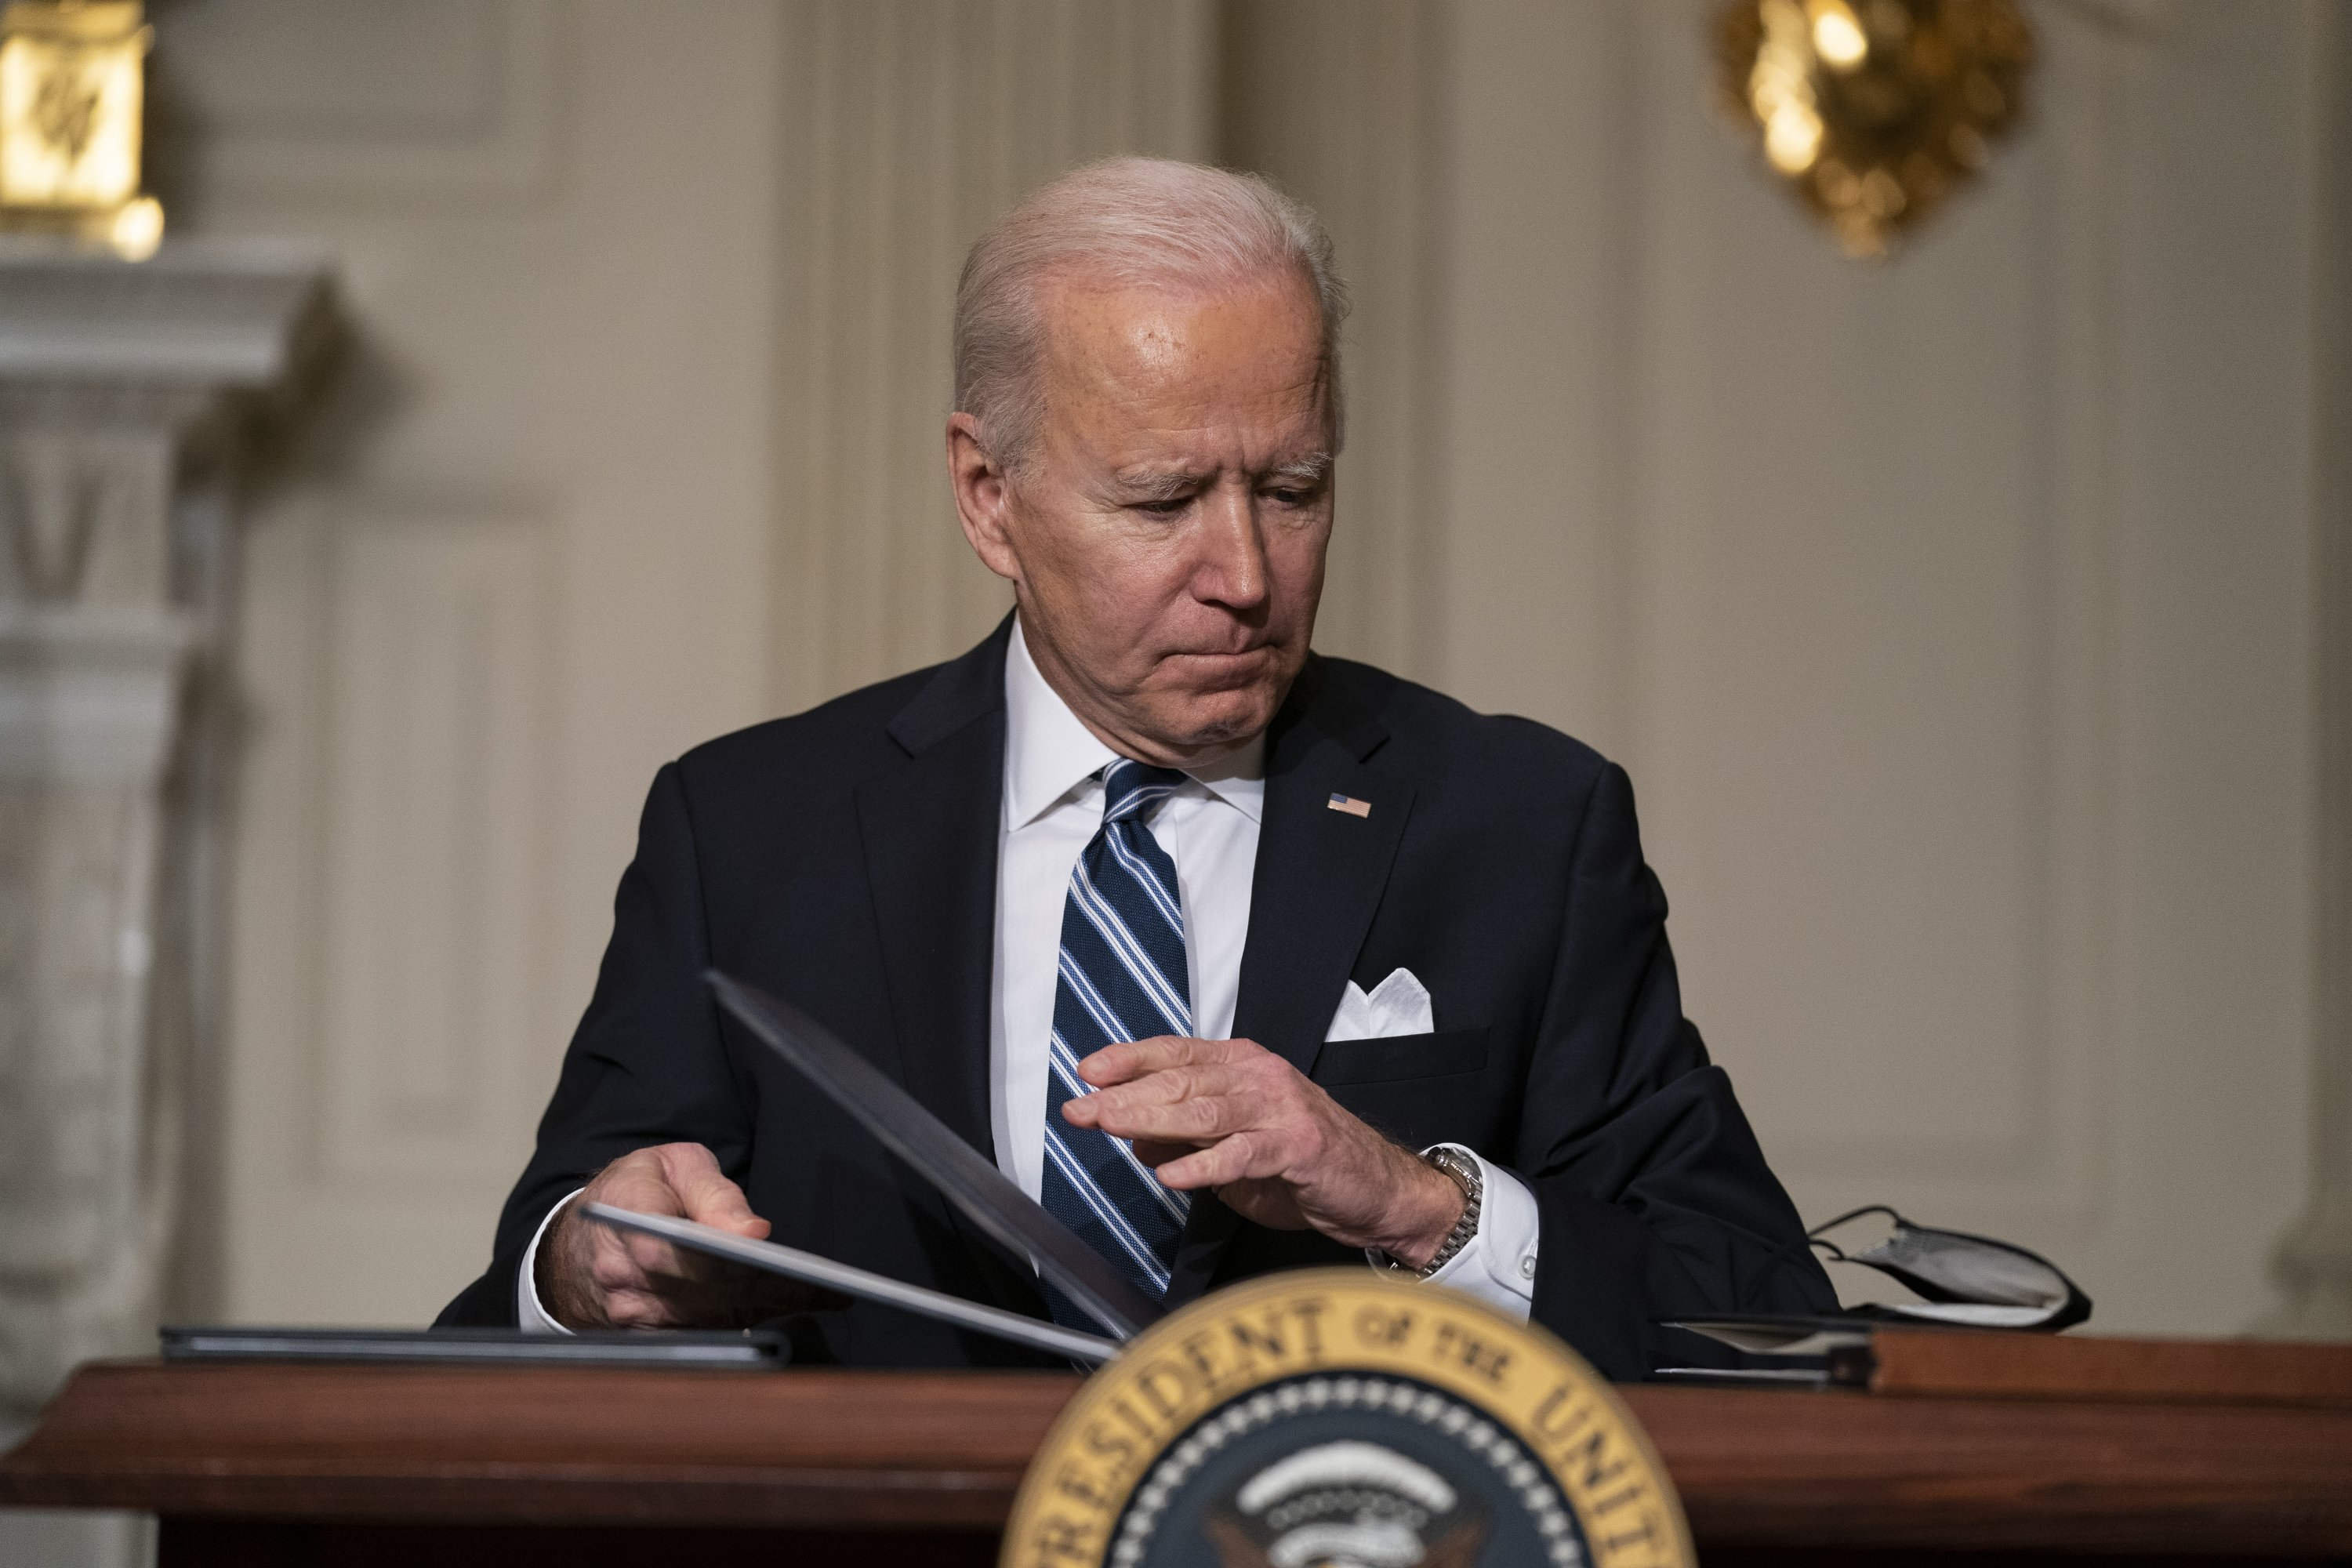 President Joe Biden signs a series of executive orders on climate change, in the State Dining Room of the White House in Washington, U.S., Jan. 27, 2021. (AP Photo)